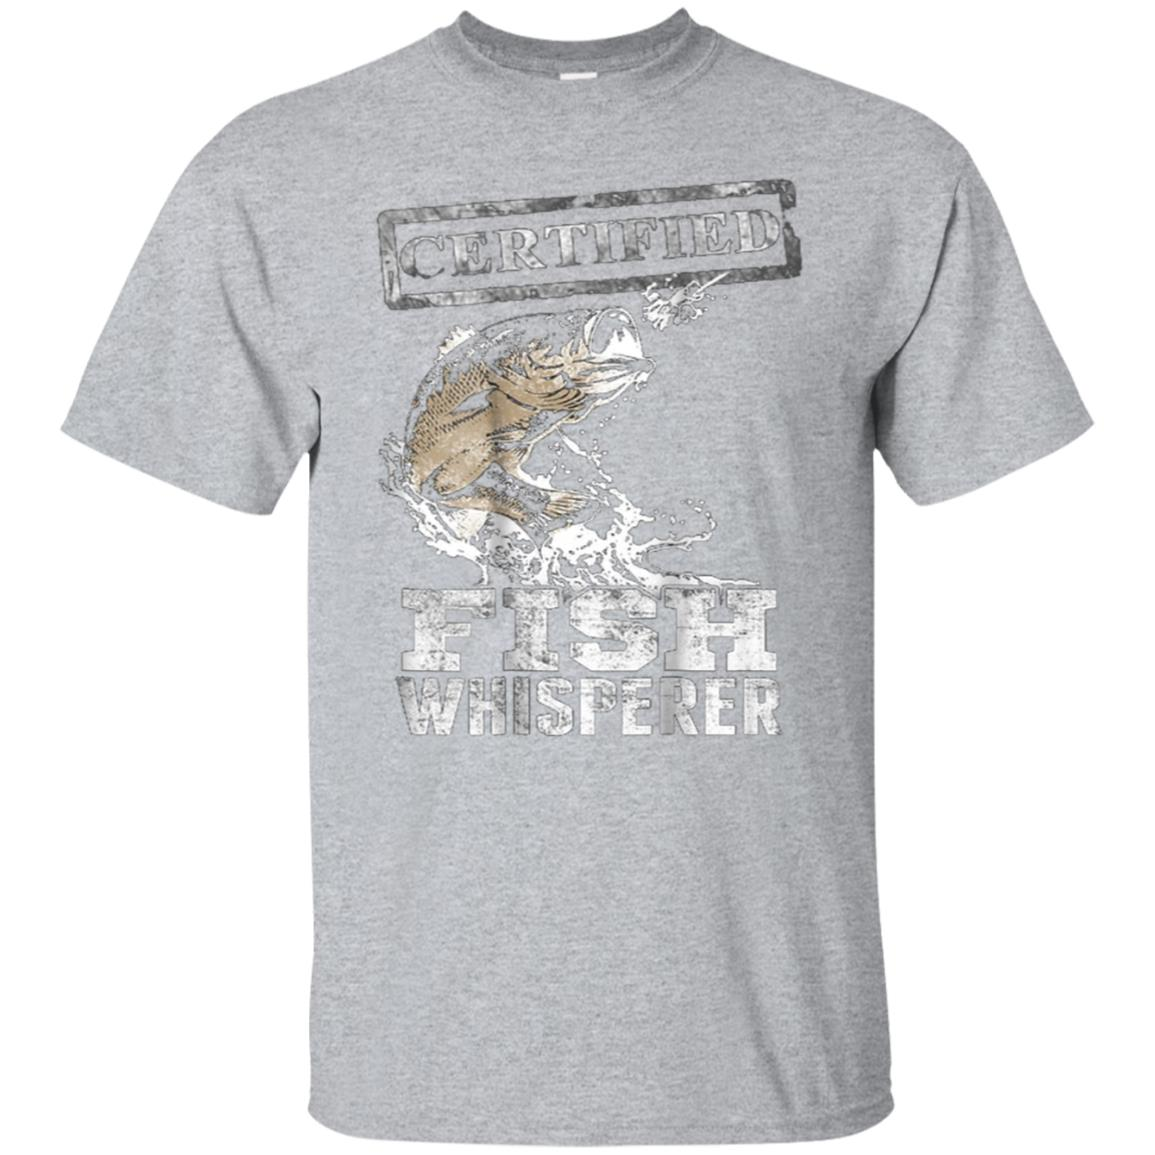 Fishing t shirts for men Certified Fish Whisperer 99promocode